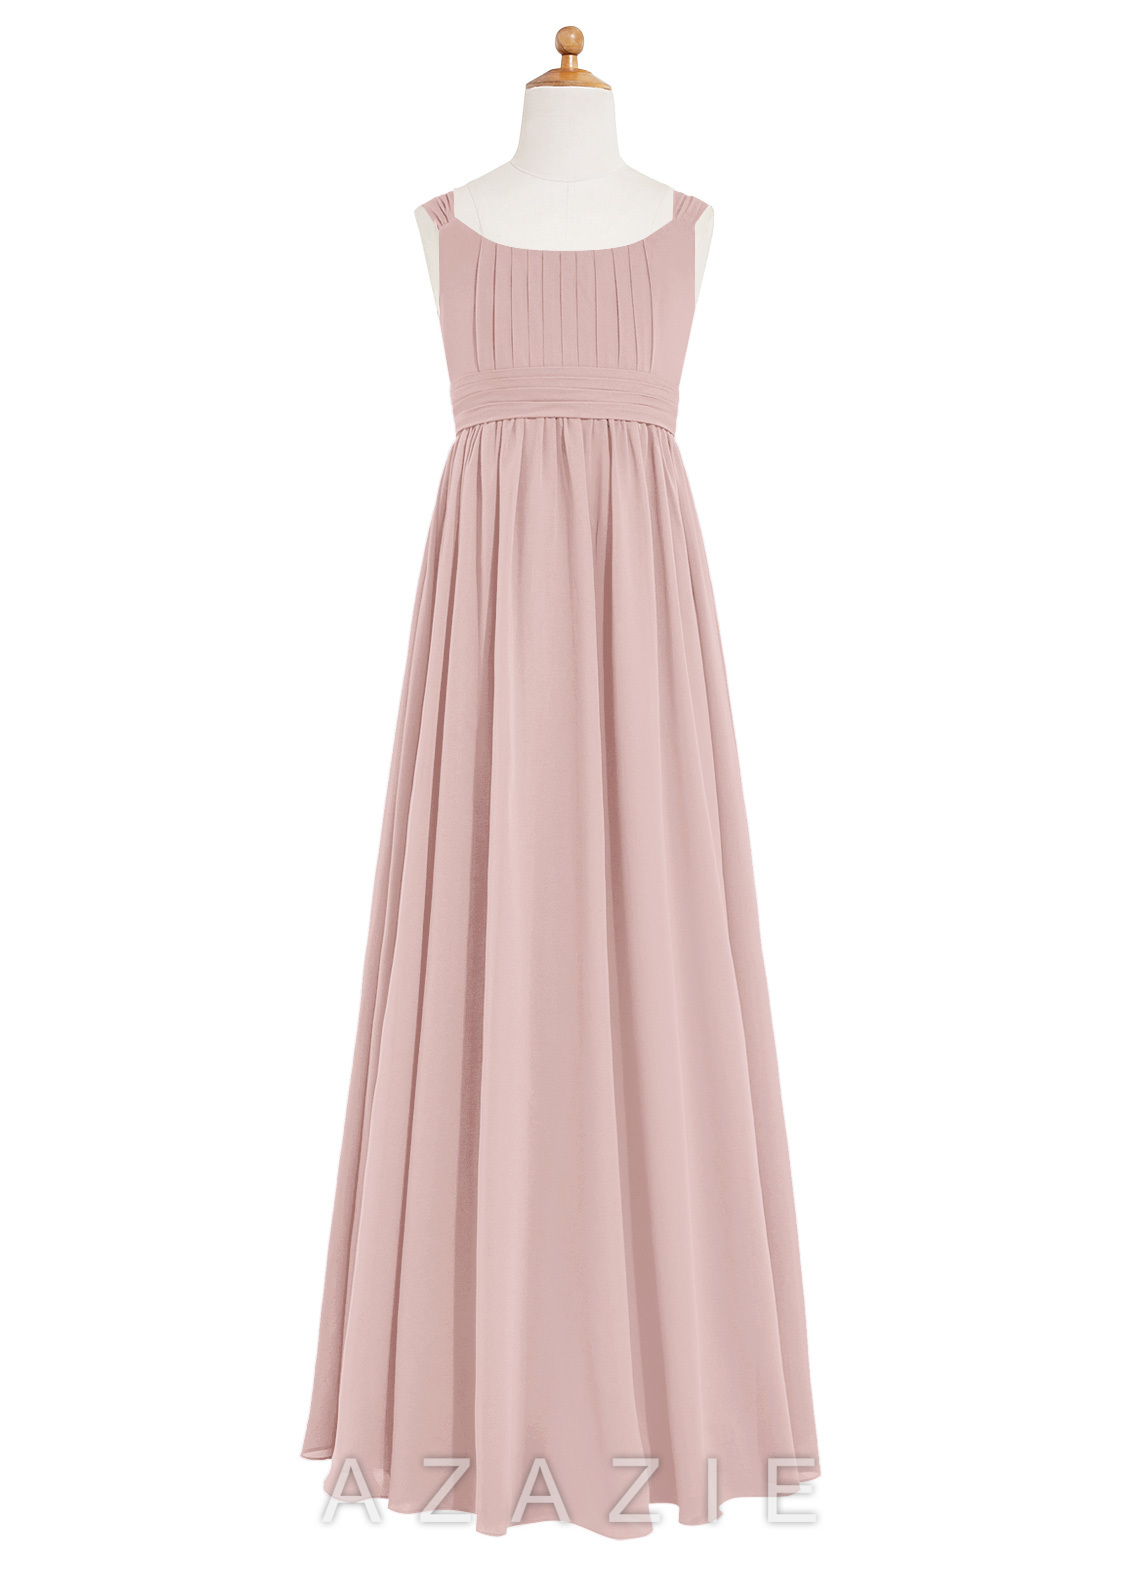 Dusty rose junior bridesmaid dresses dusty rose gowns azazie azazie tiana jbd ombrellifo Images